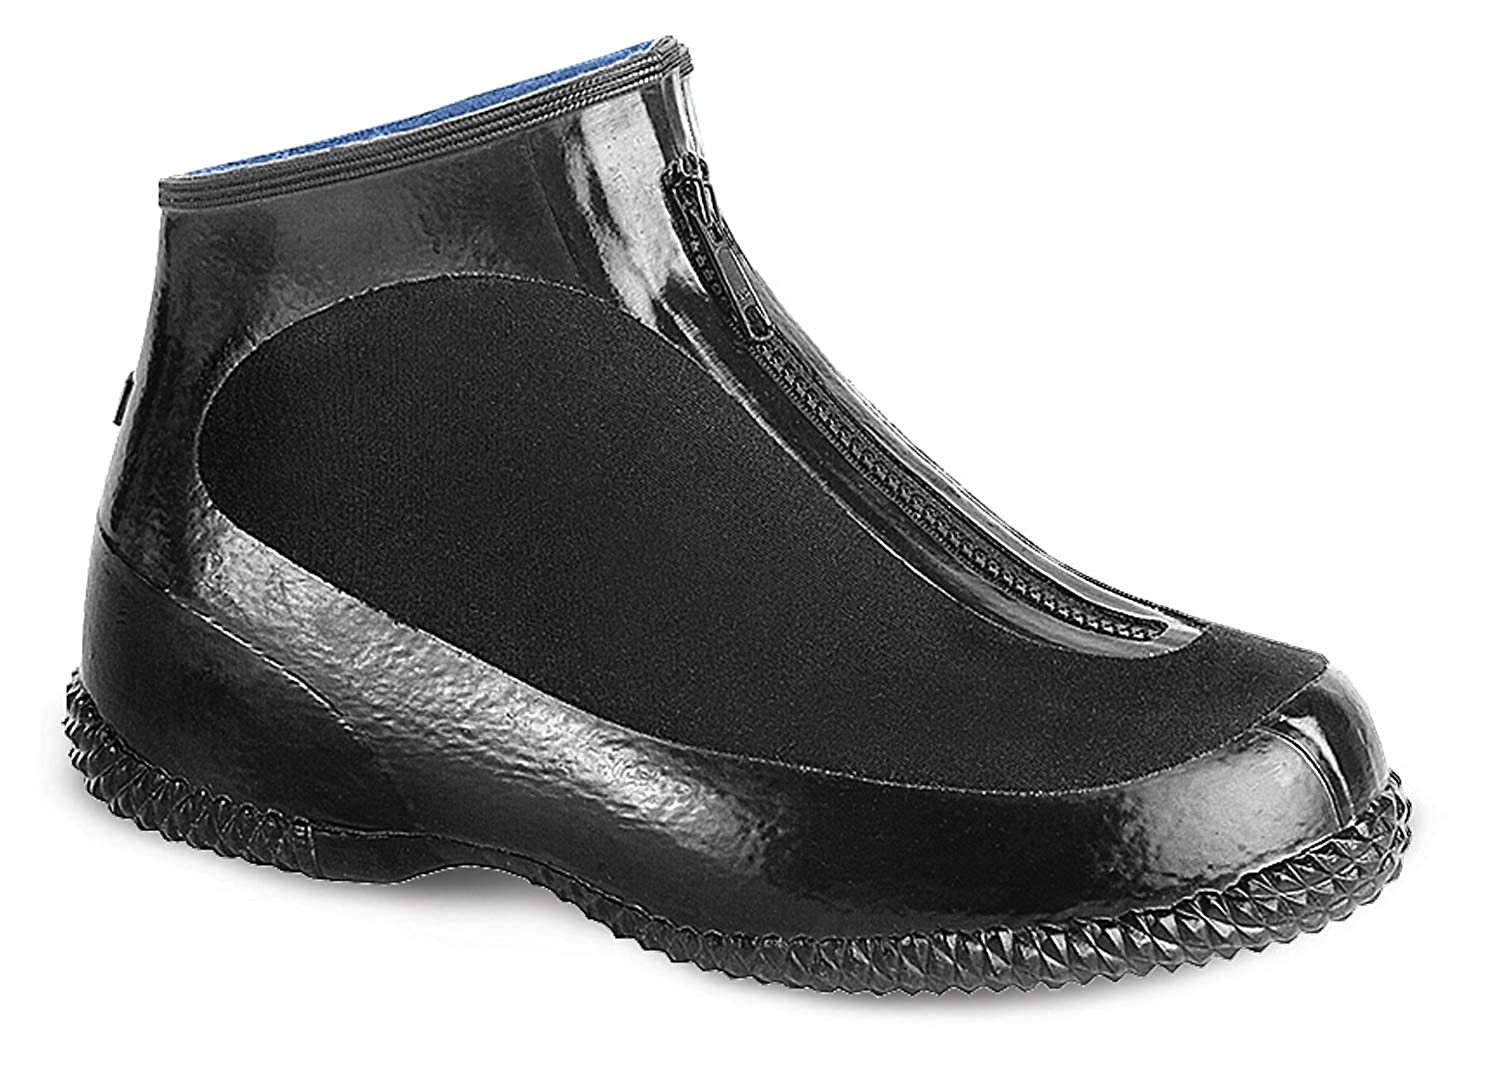 Acton Sizes 6 to 13 Medium Width 5 inch height Joule Black Overshoes